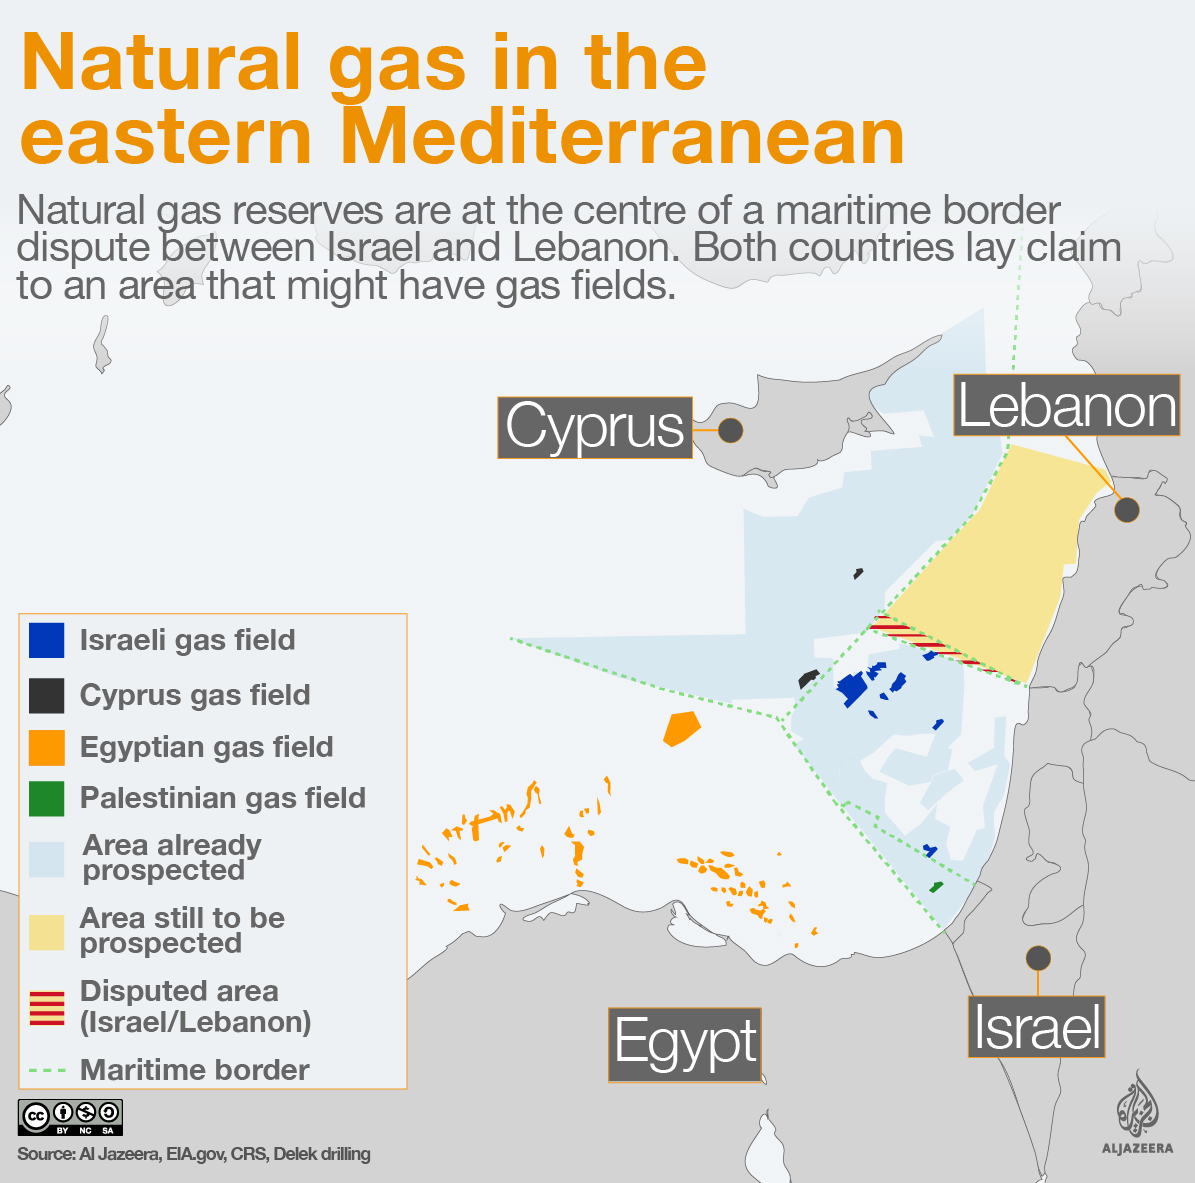 natural gas fields reserves eastern mediterranean sea infographic